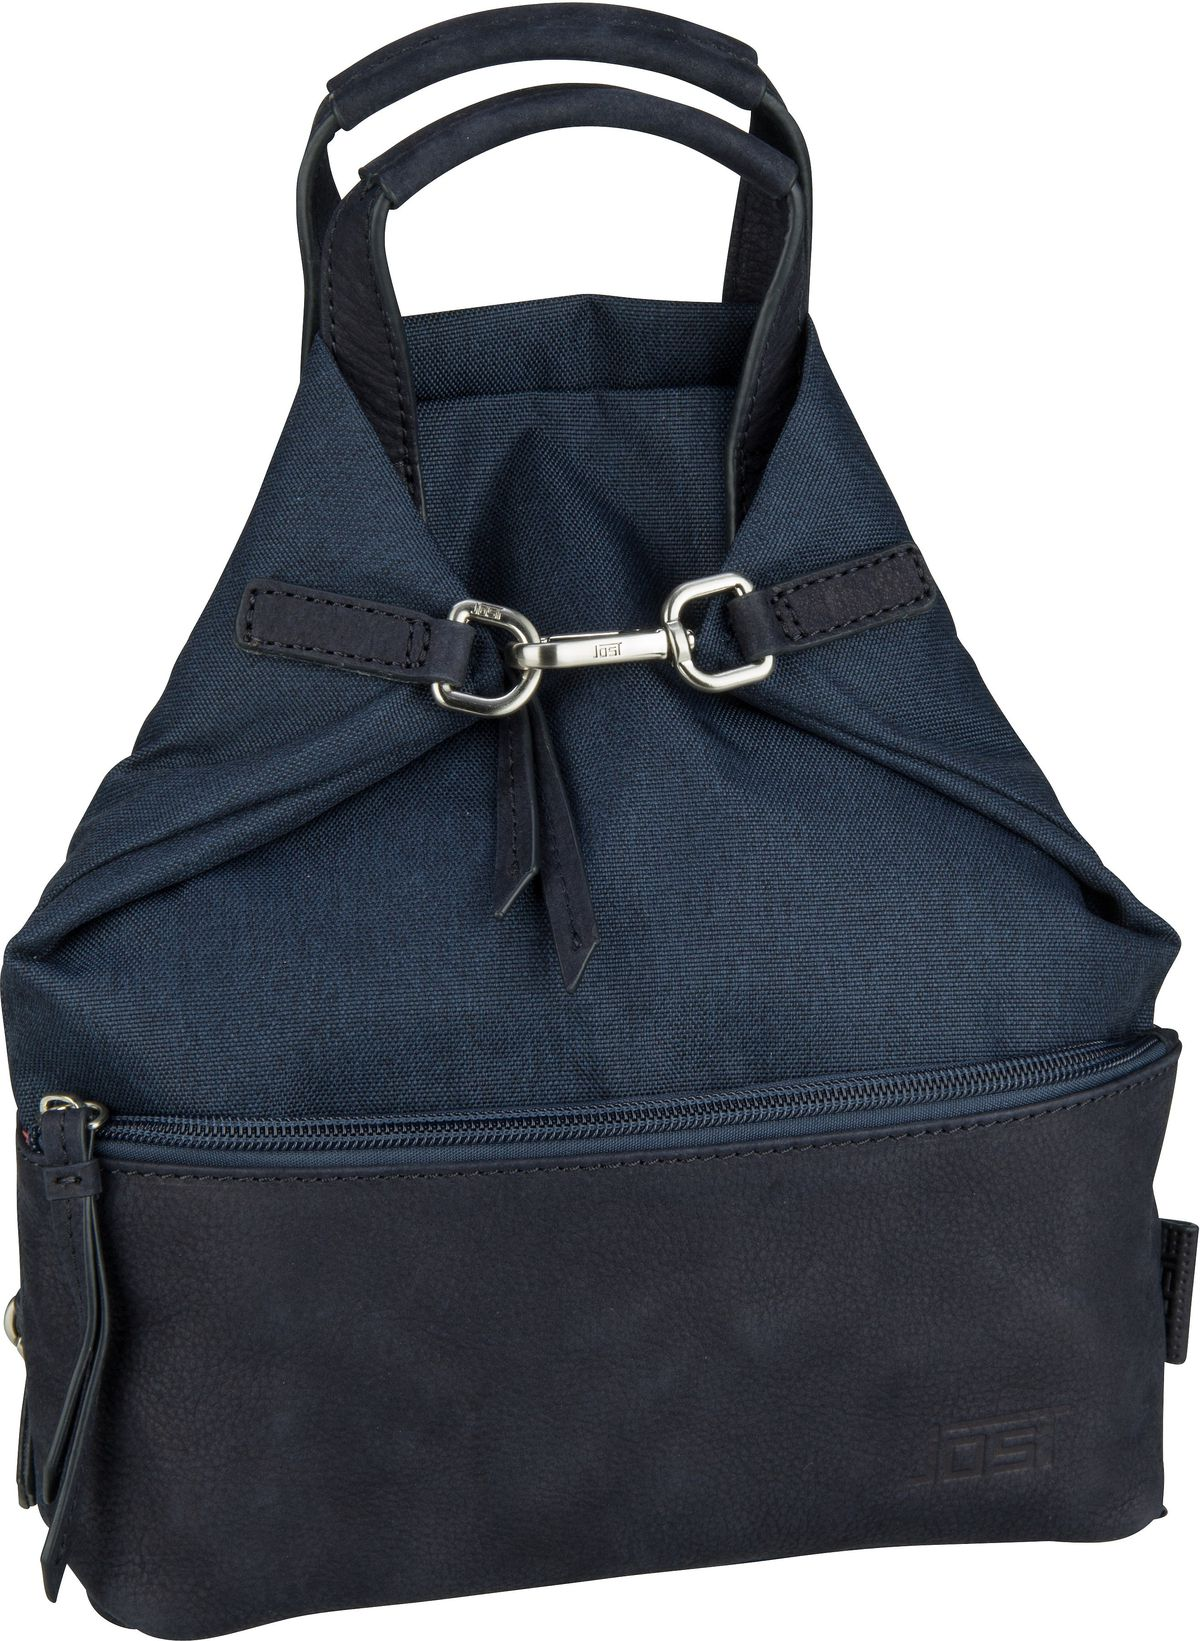 Jost Rucksack / Daypack 2715 X-Change Bag Mini Navy